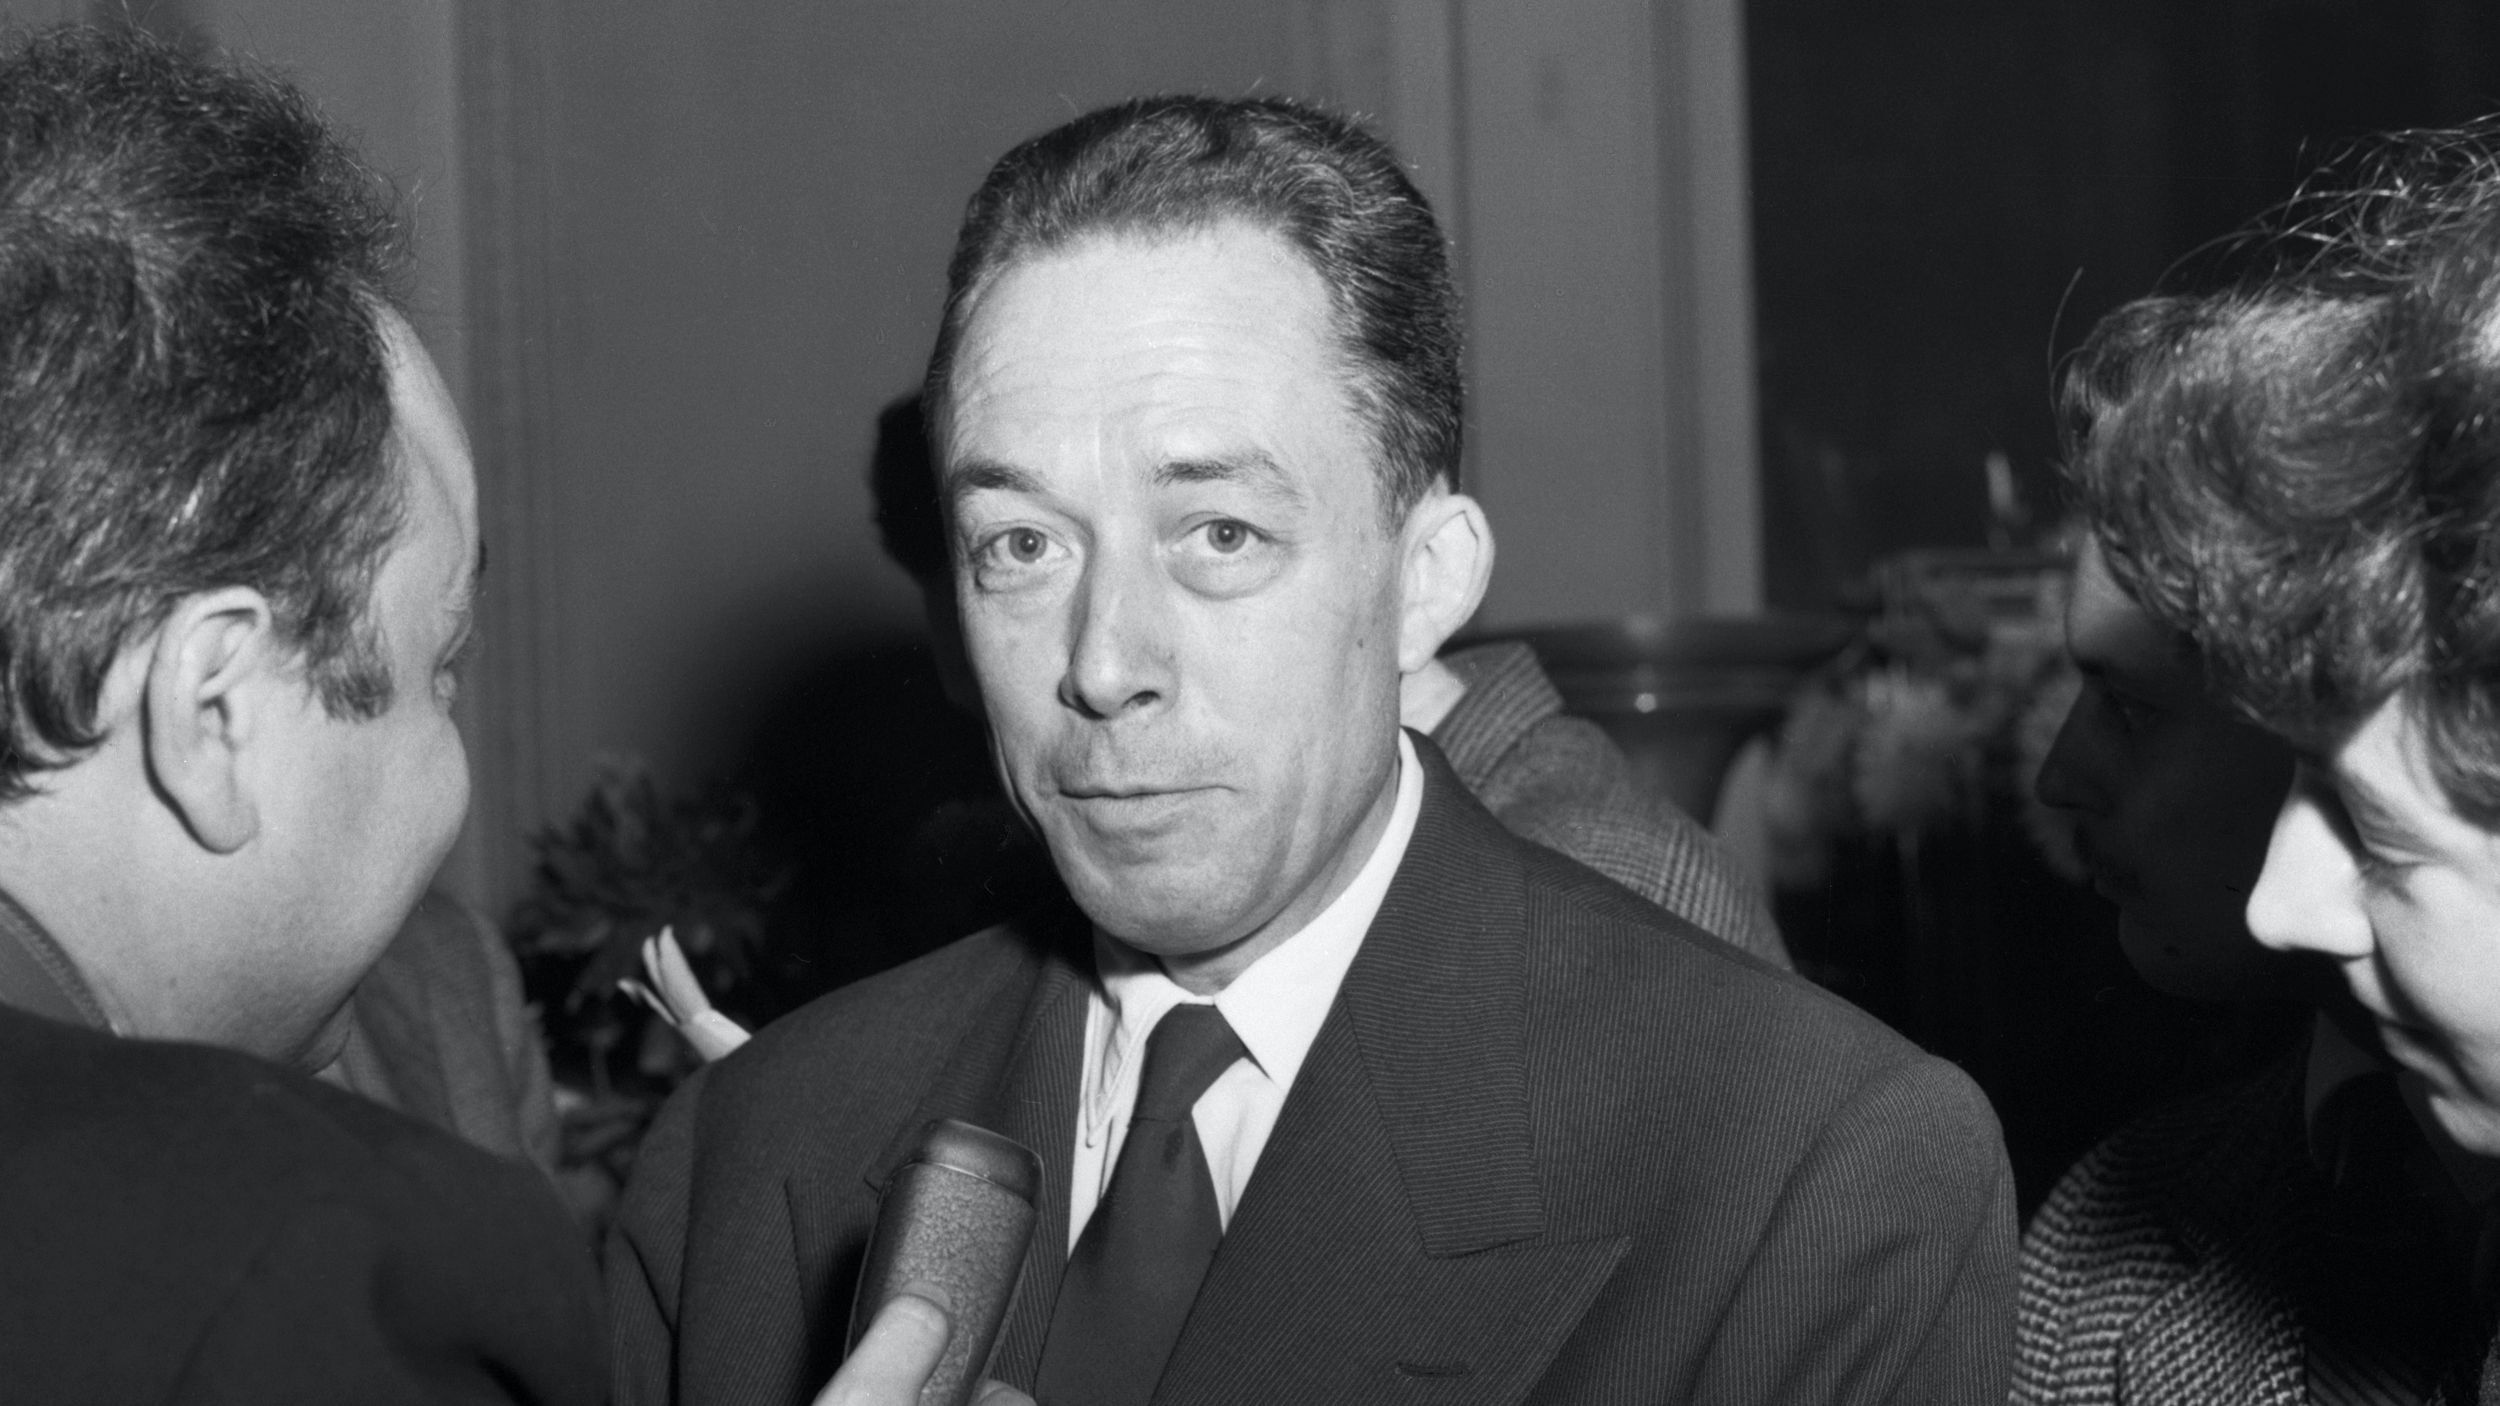 Biography of Albert Camus, French-Algerian Philosopher and Author